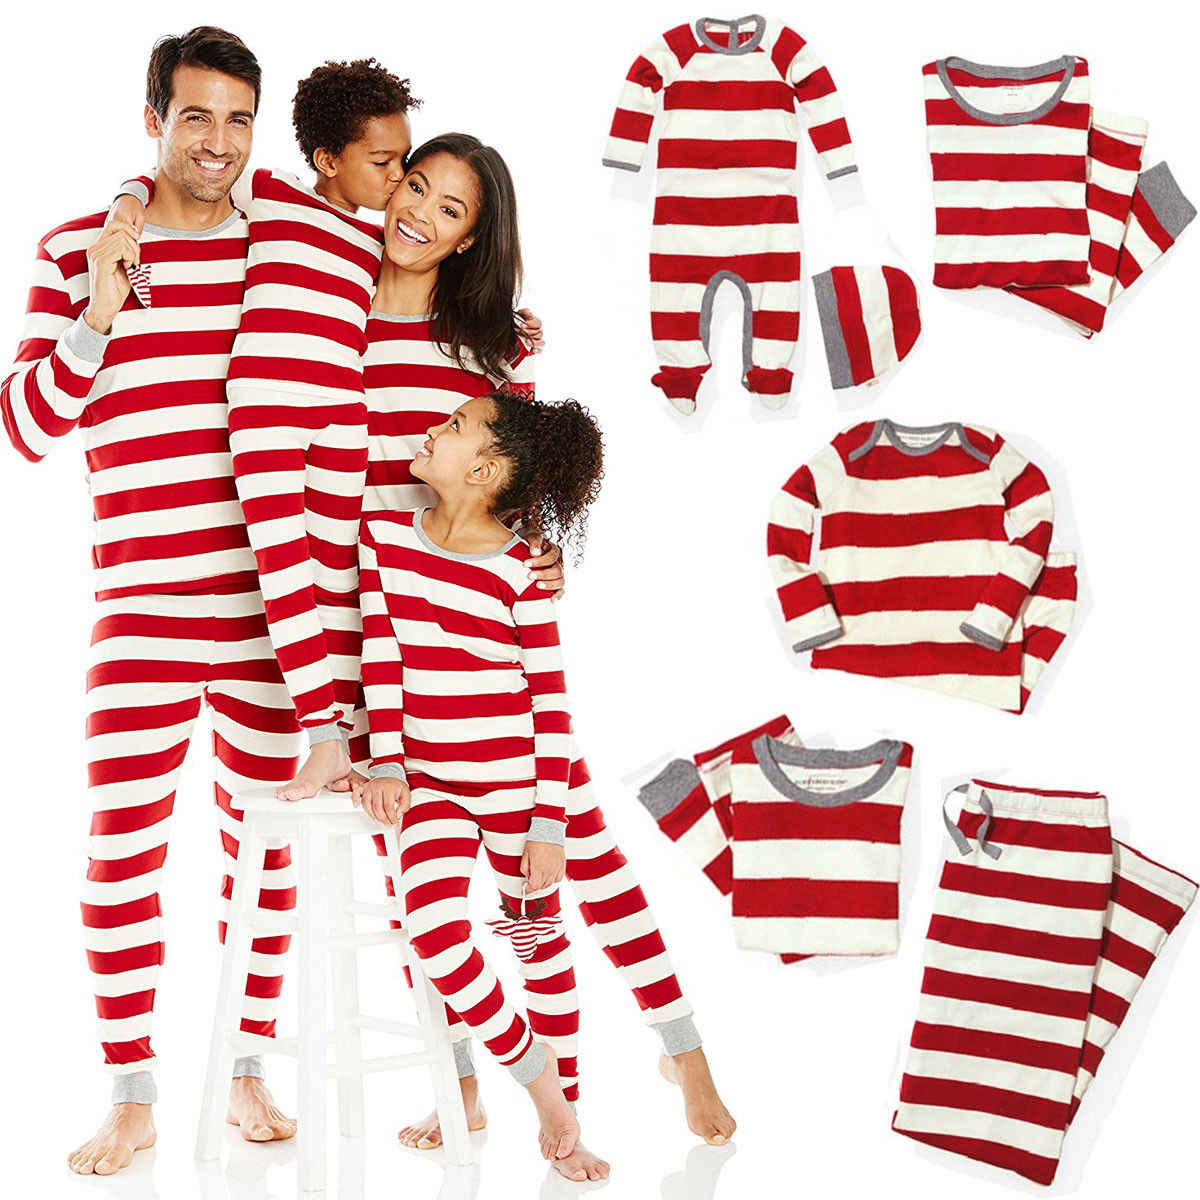 Xmas Striped Family Matching Outfits Set Christmas Family Pajamas Set Adult Kid  Sleepwear Nightwear Pjs Photgraphy bc5bd01ce